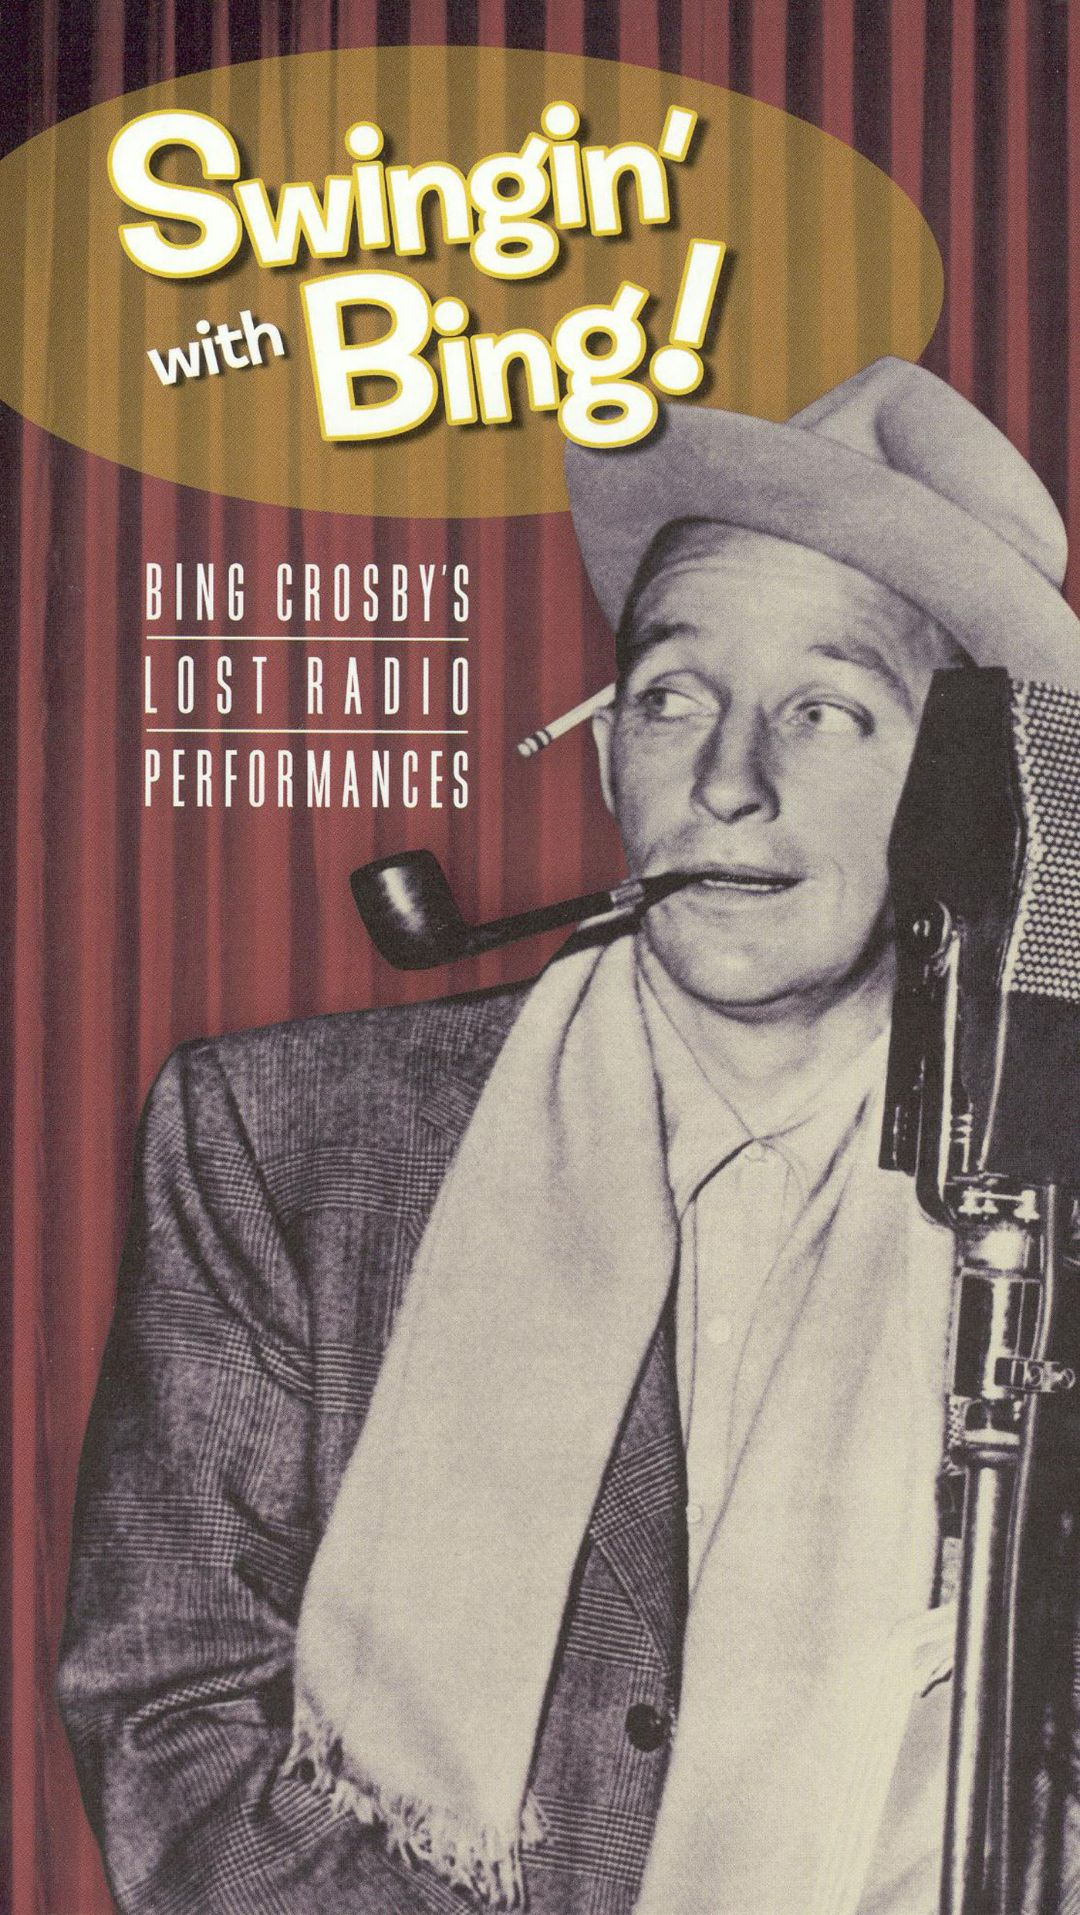 Swingin' with Bing! Bing Crosby's Lost Radio Performances